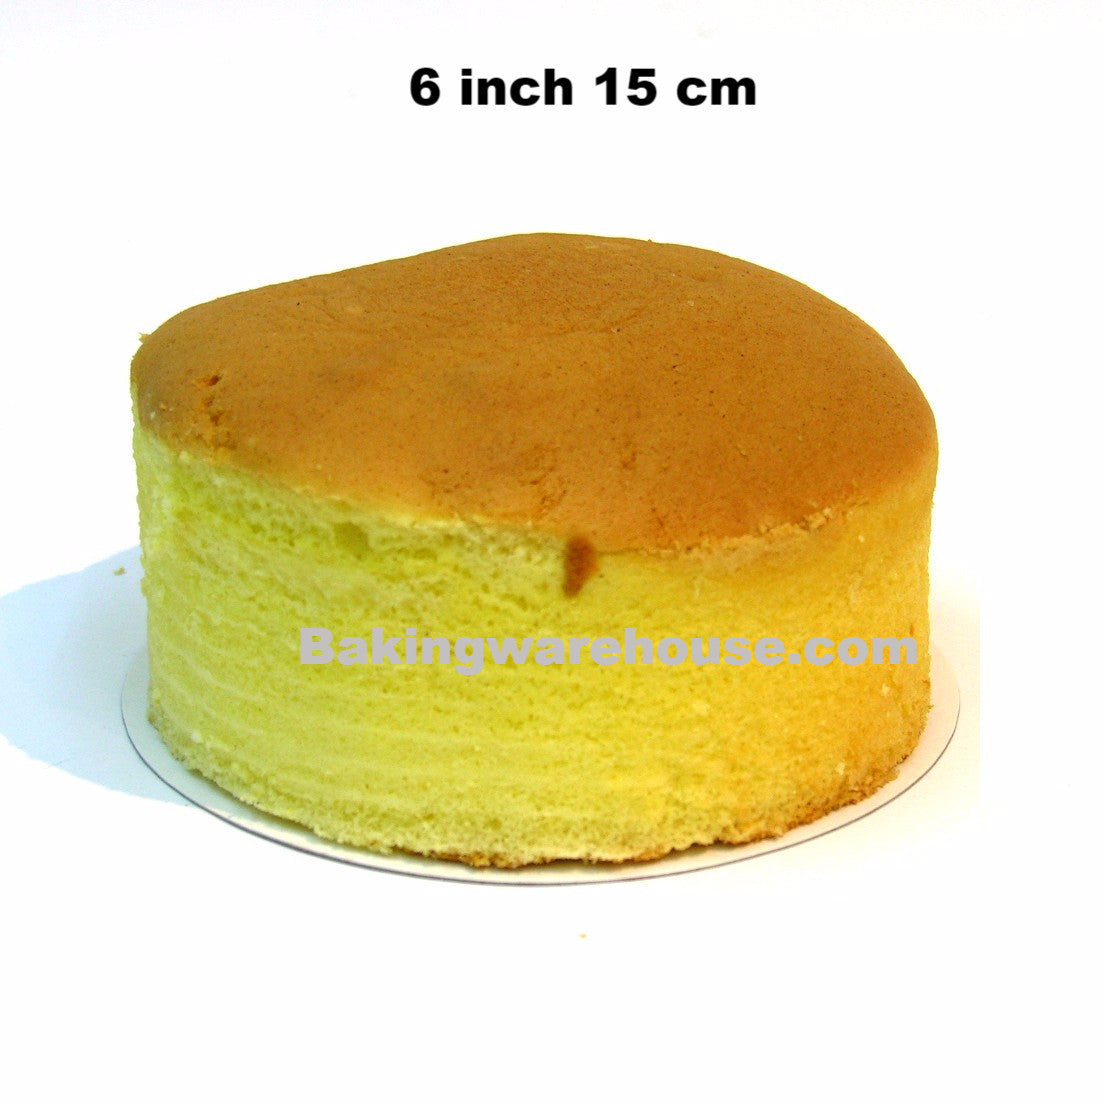 How To Defrost A Sponge Cake